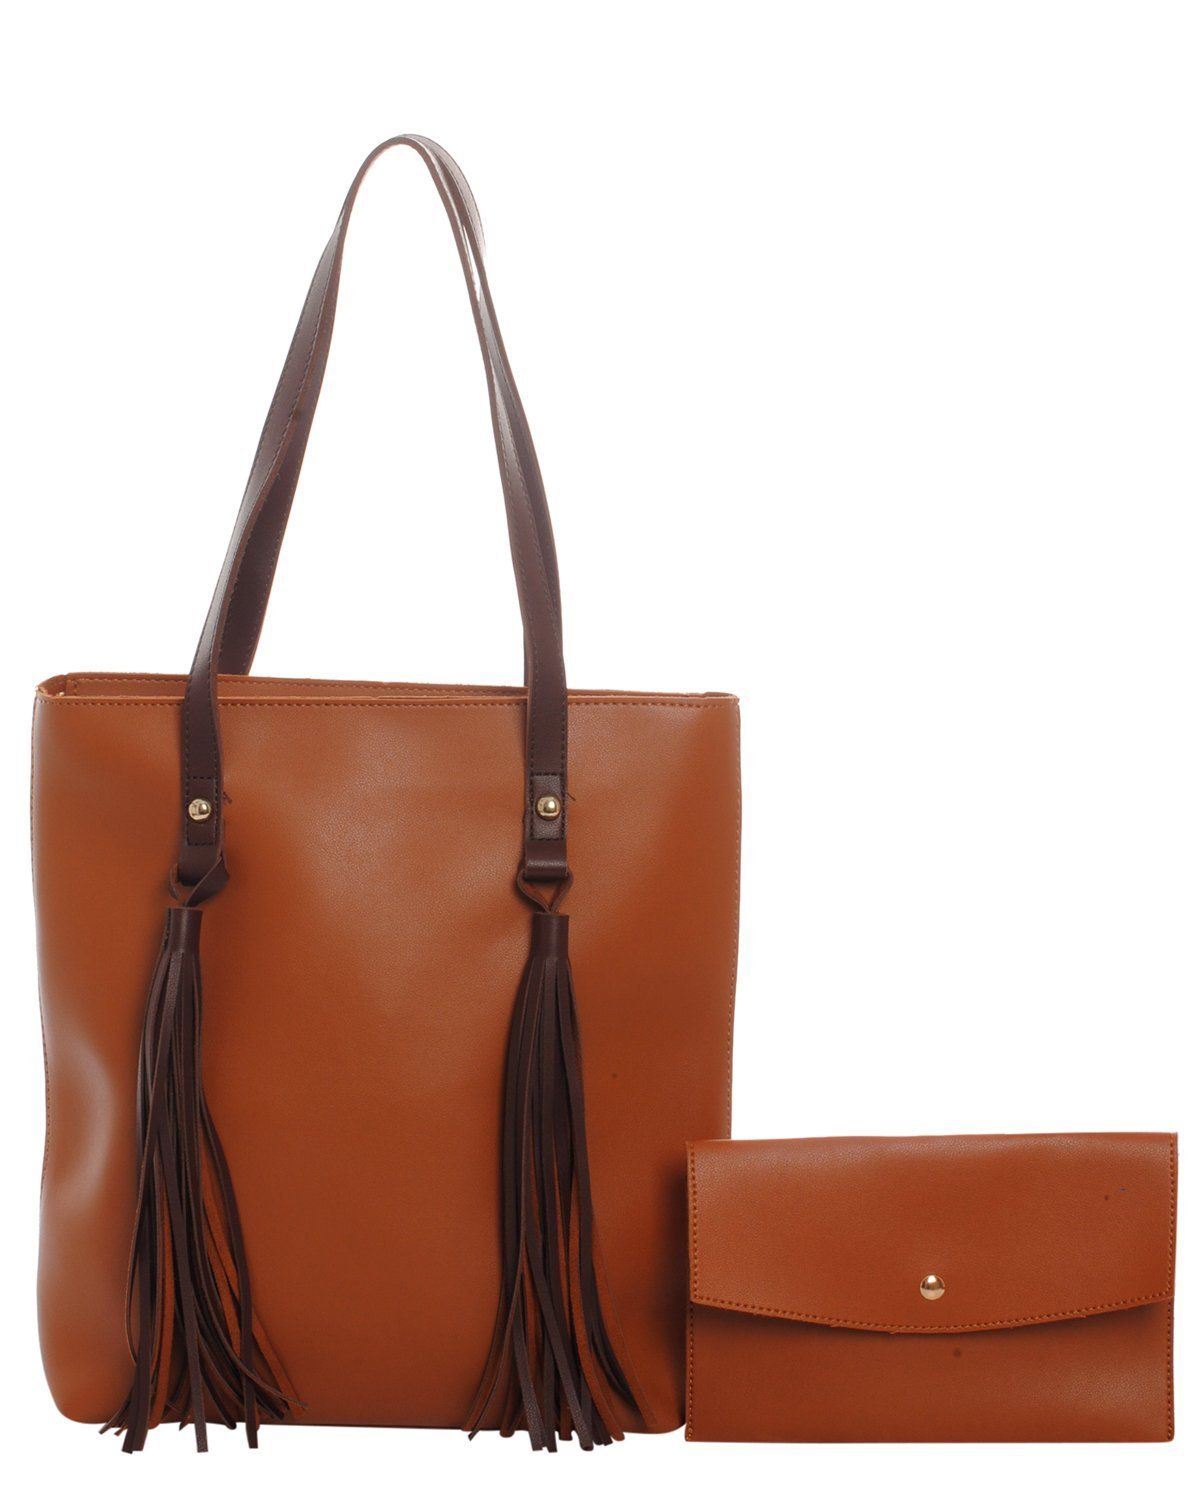 Tassel Fringe Shoulder Handbag & Wallet 2 Piece Set (Tan)